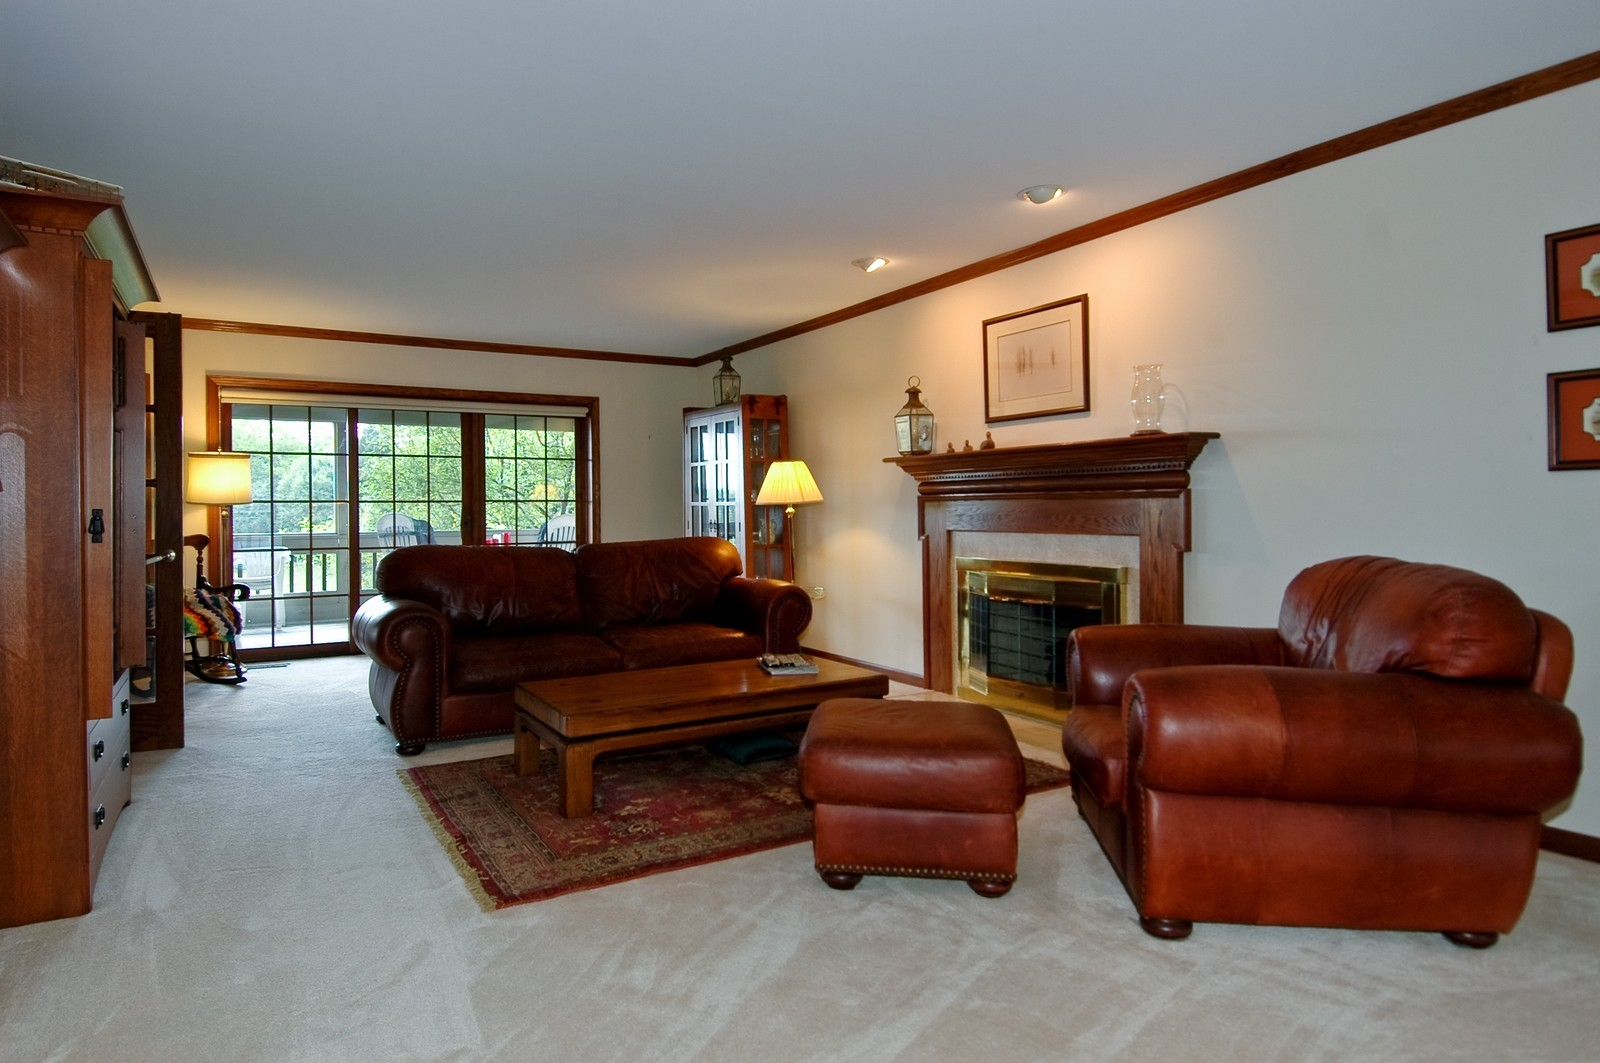 Real Estate Photography - 9409 Loch Glen Court, Lakewood, IL, 60014 - Living Room